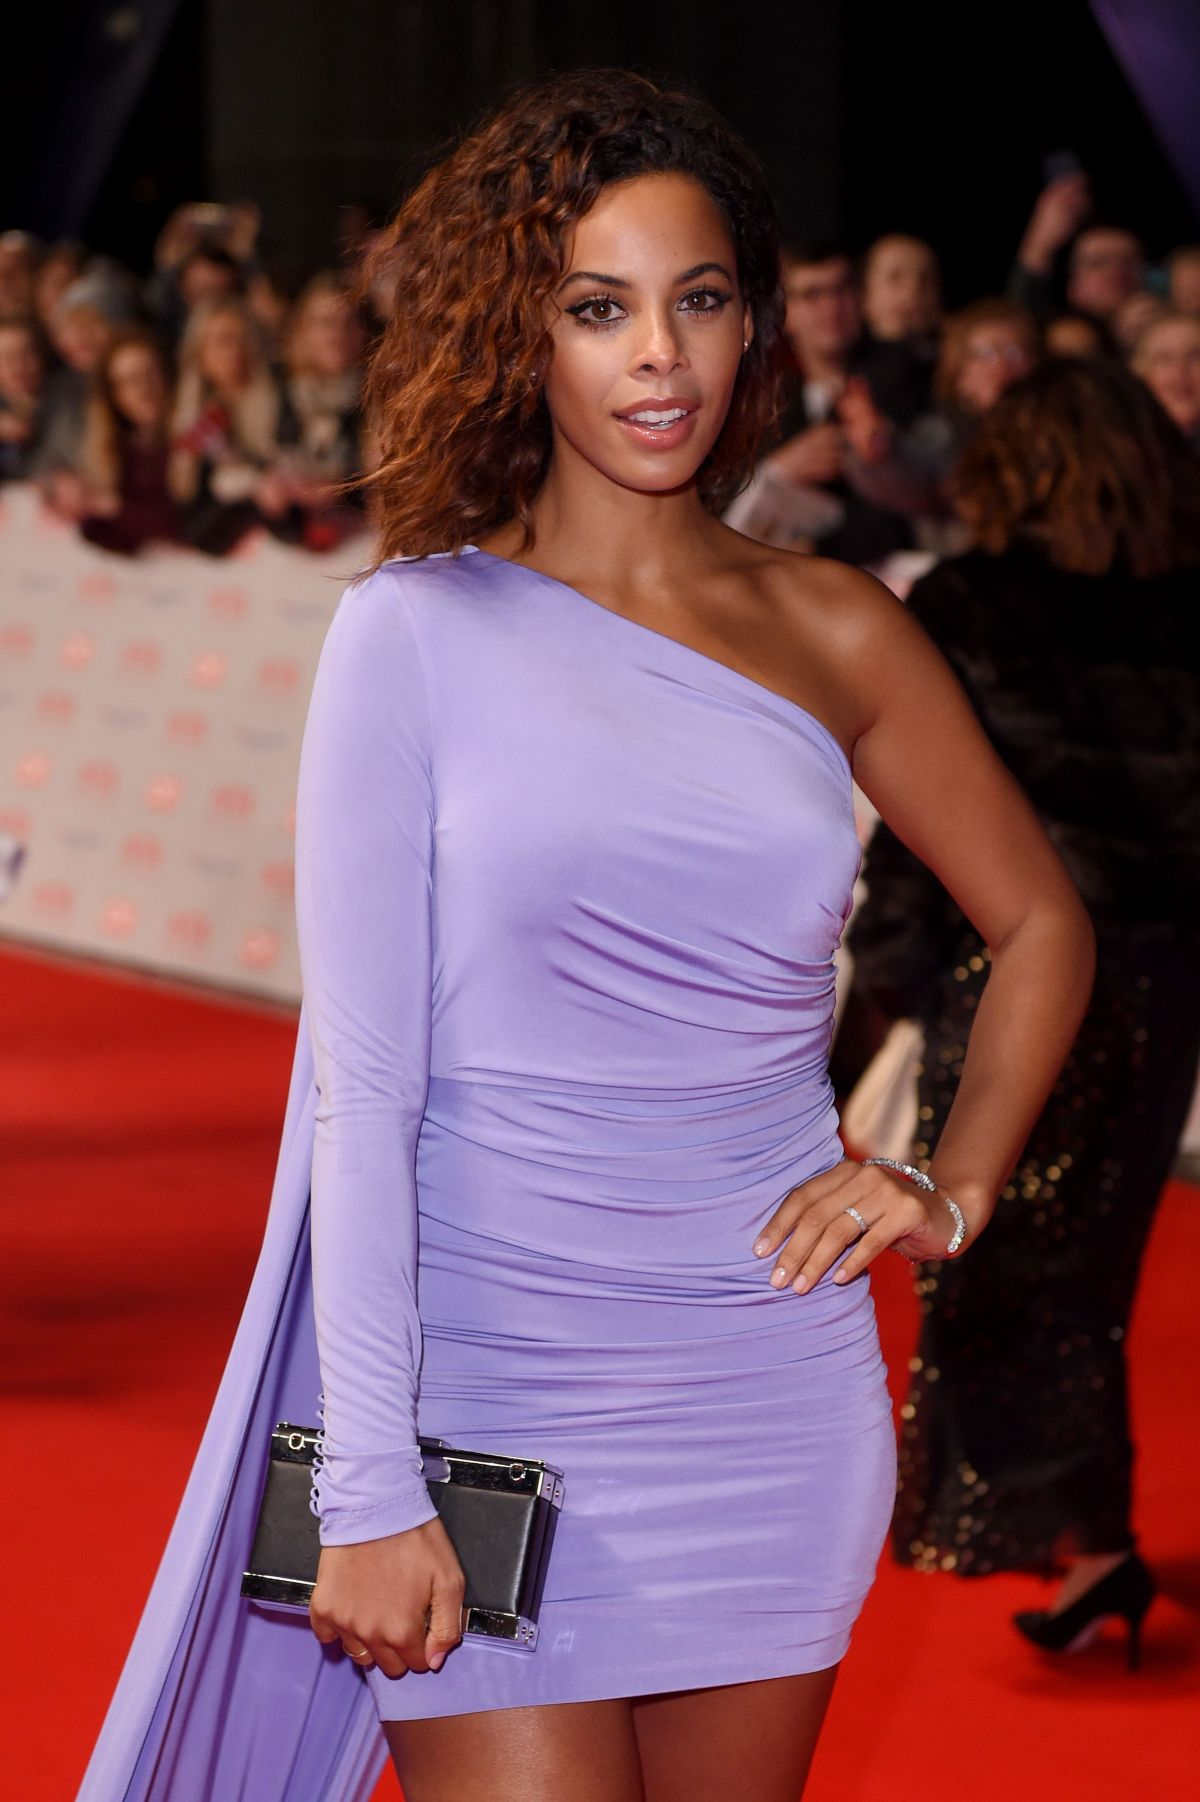 rochelle humes - photo #35